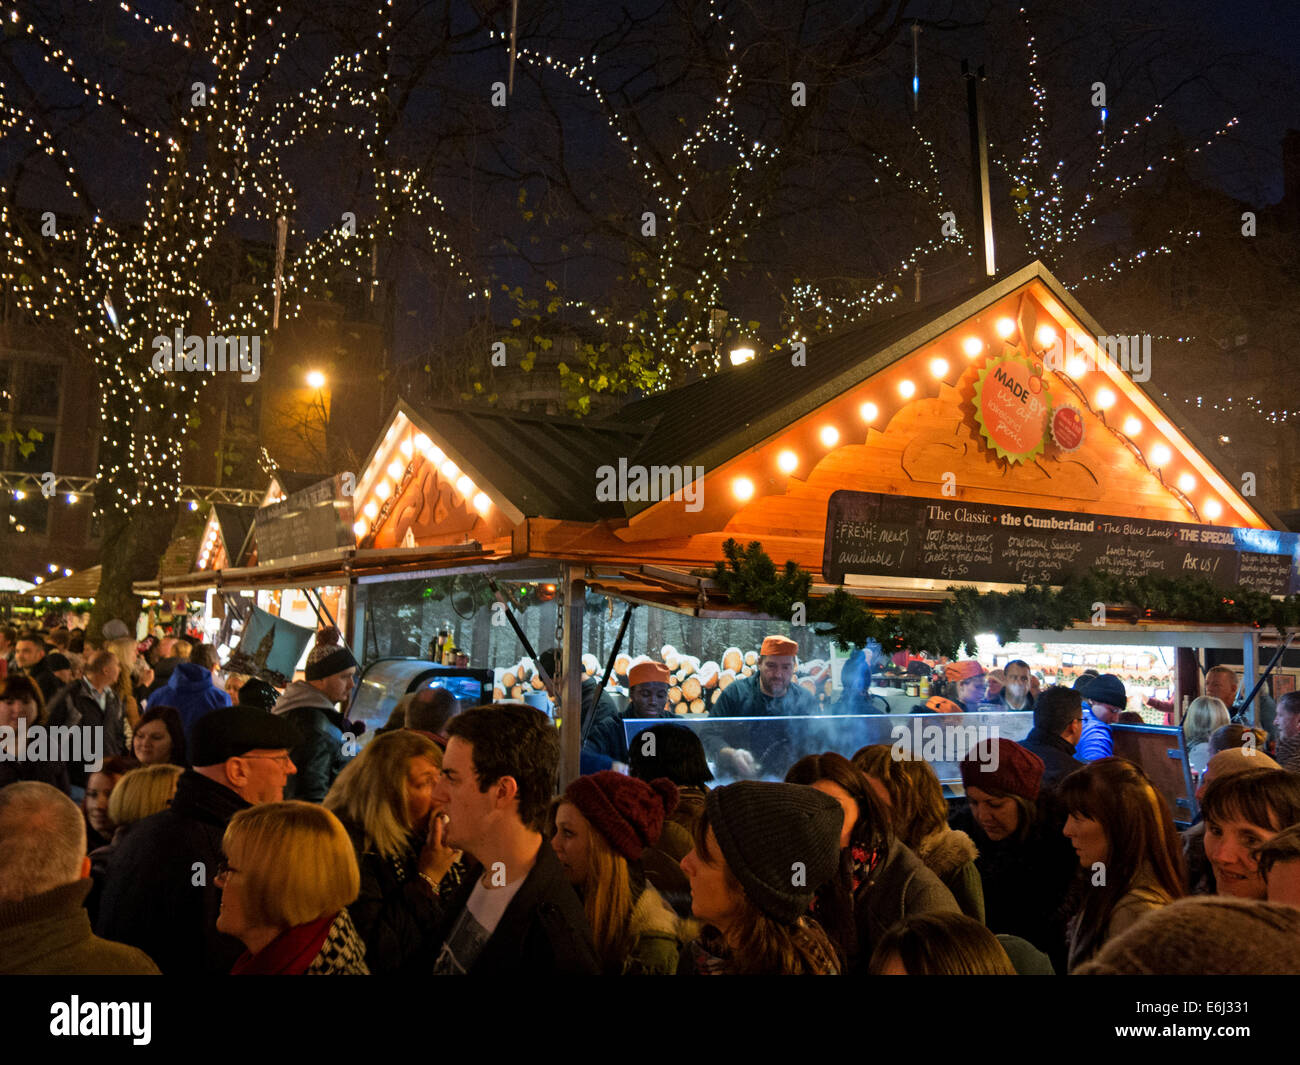 night,sq,market,town,hall,santa,on,clock,NW,north,west,evening,crowd,crowds,shopping,food,drink,German,Markets,in,Albert,Square,December,at,dusk,happy,enjoying,themselves,festive,trip,into,the,city,town,fun,happy,German,Markets,in,Albert,Square,December,at,dusk,Lancs,Lancashire,tour,tourist,Gotonysmith,tourism,trip,buy,buying,presents,wurst,sausages,cooking,cooked,food,wooden,hut,huts,shed,sheds,all,ages